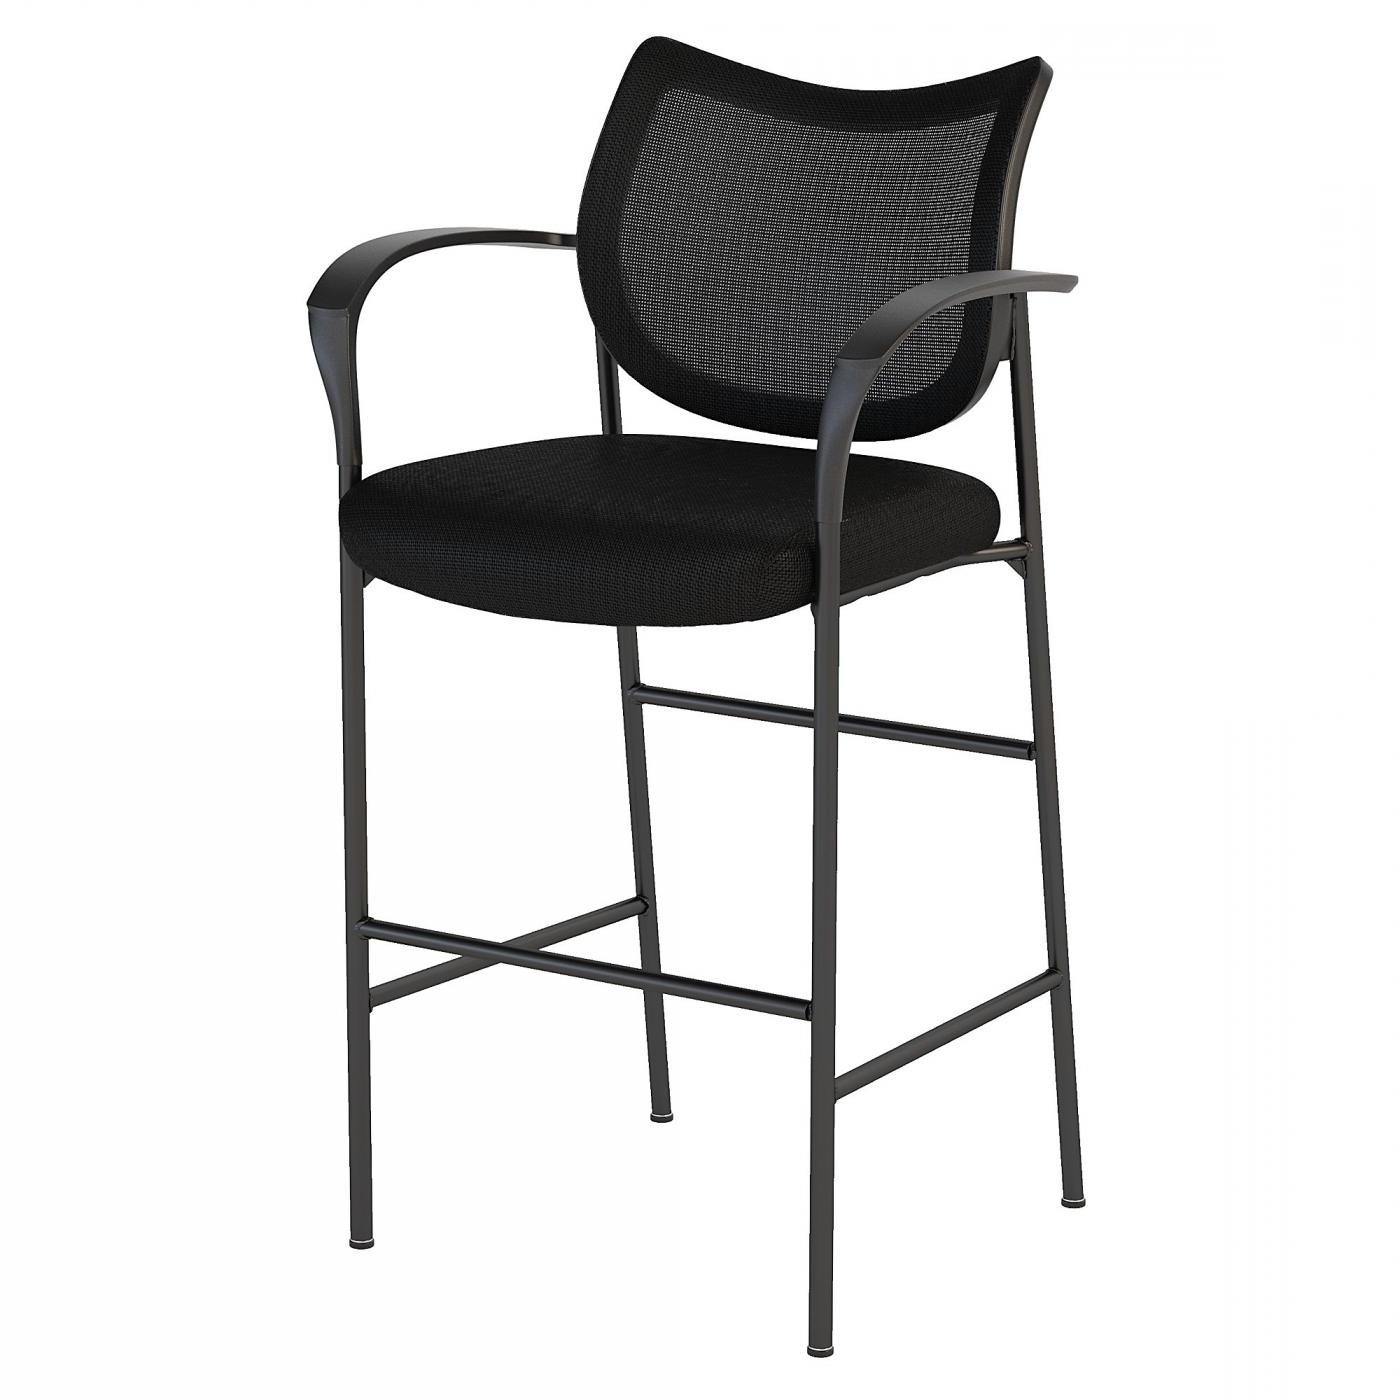 <font color=#c60><b>BUSH BUSINESS FURNITURE CORPORATE MESH BACK STANDING DESK STOOL. FREE SHIPPING</font></b> </font></b>